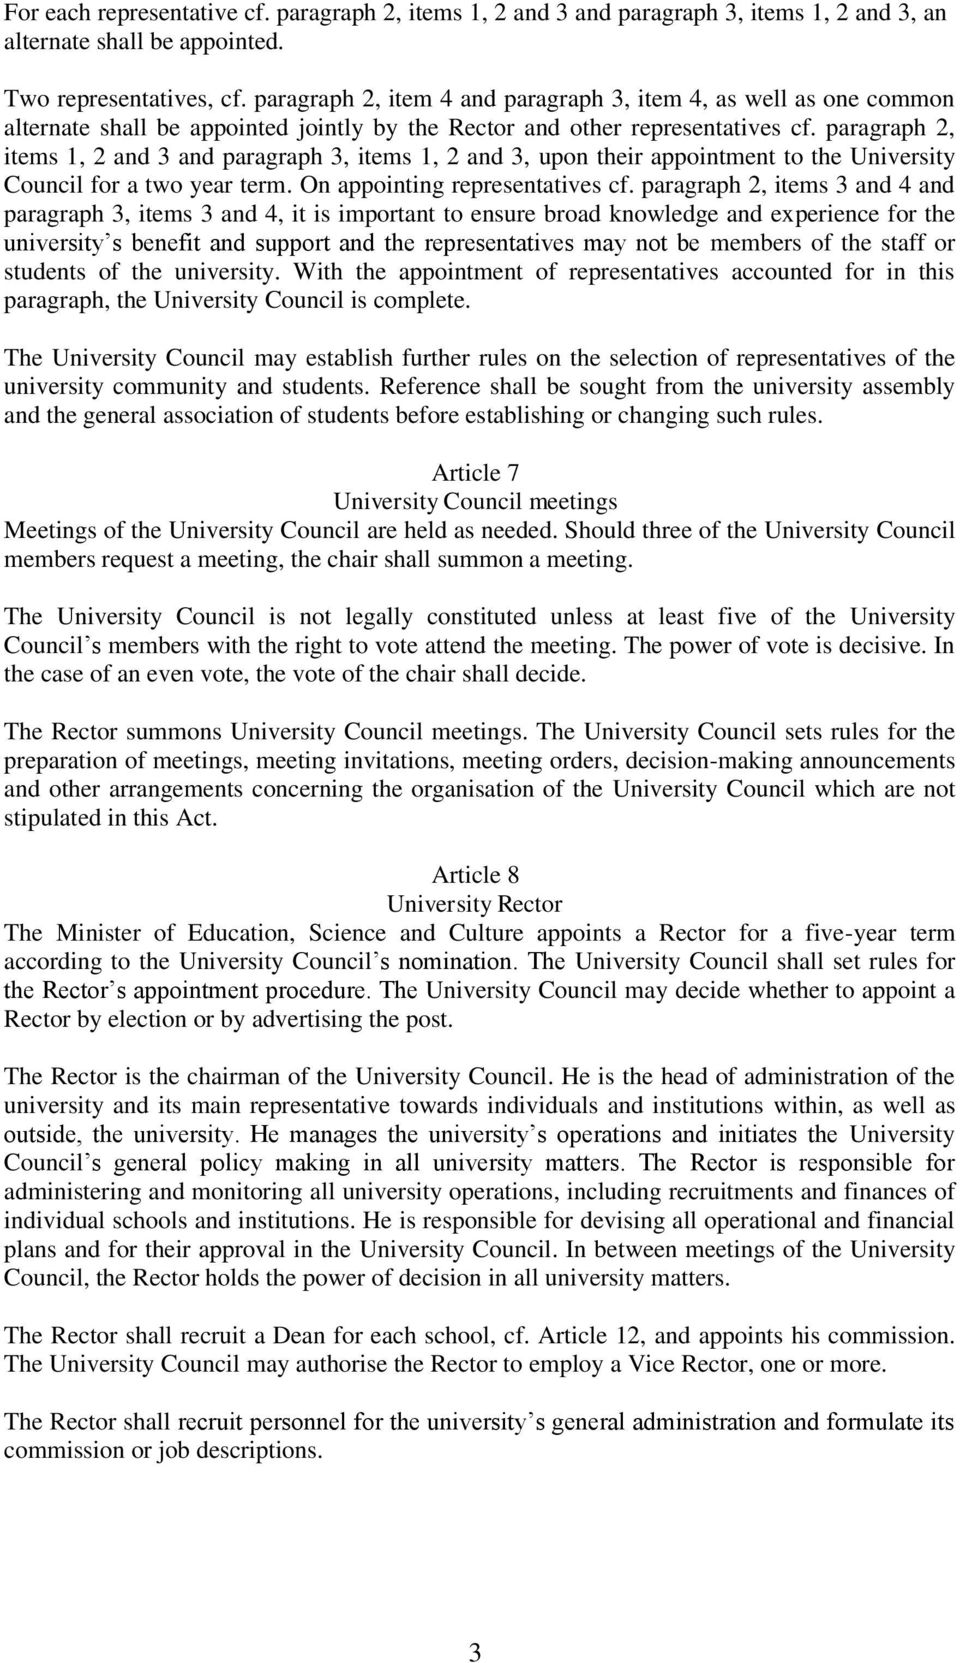 paragraph 2, items 1, 2 and 3 and paragraph 3, items 1, 2 and 3, upon their appointment to the University Council for a two year term. On appointing representatives cf.